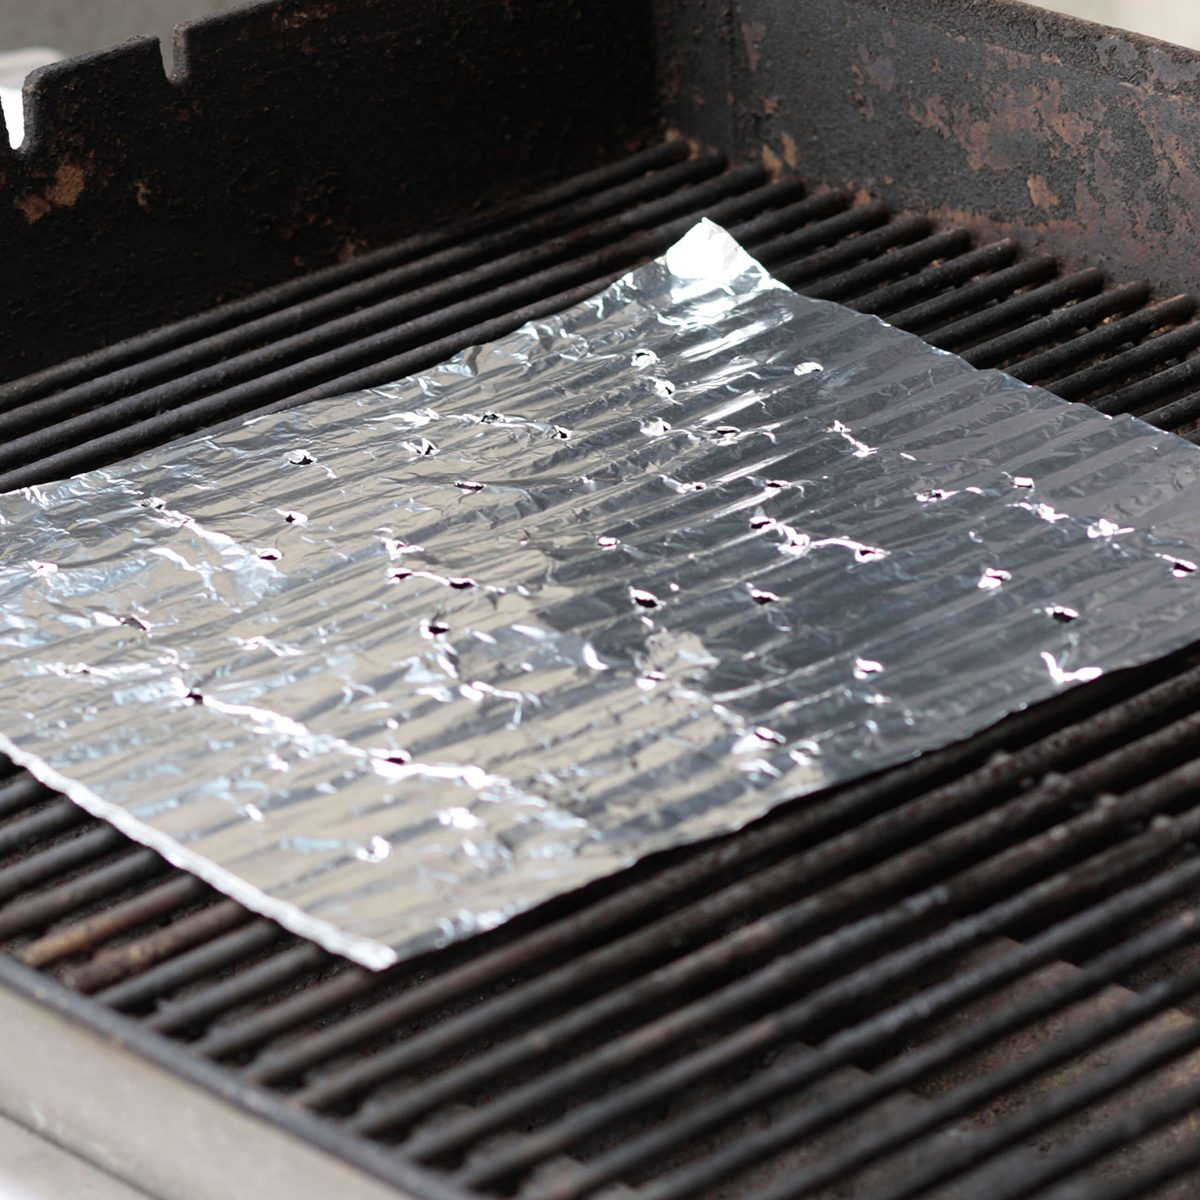 Foil sheet on a grill